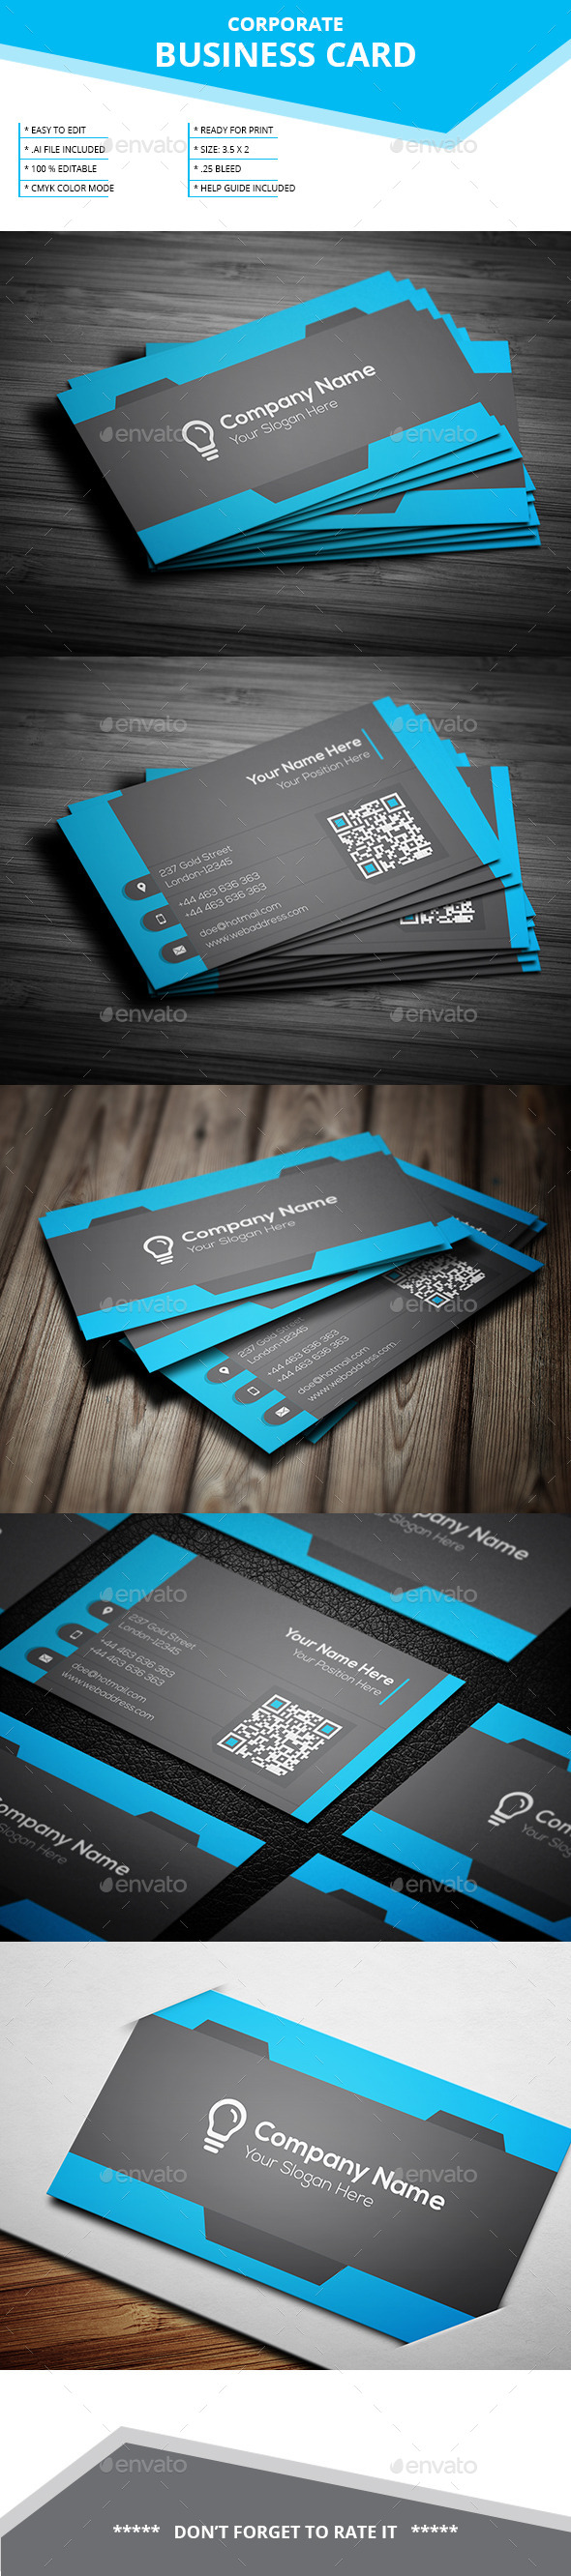 Corporate Business Card _ SL _ 15 - Business Cards Print Templates